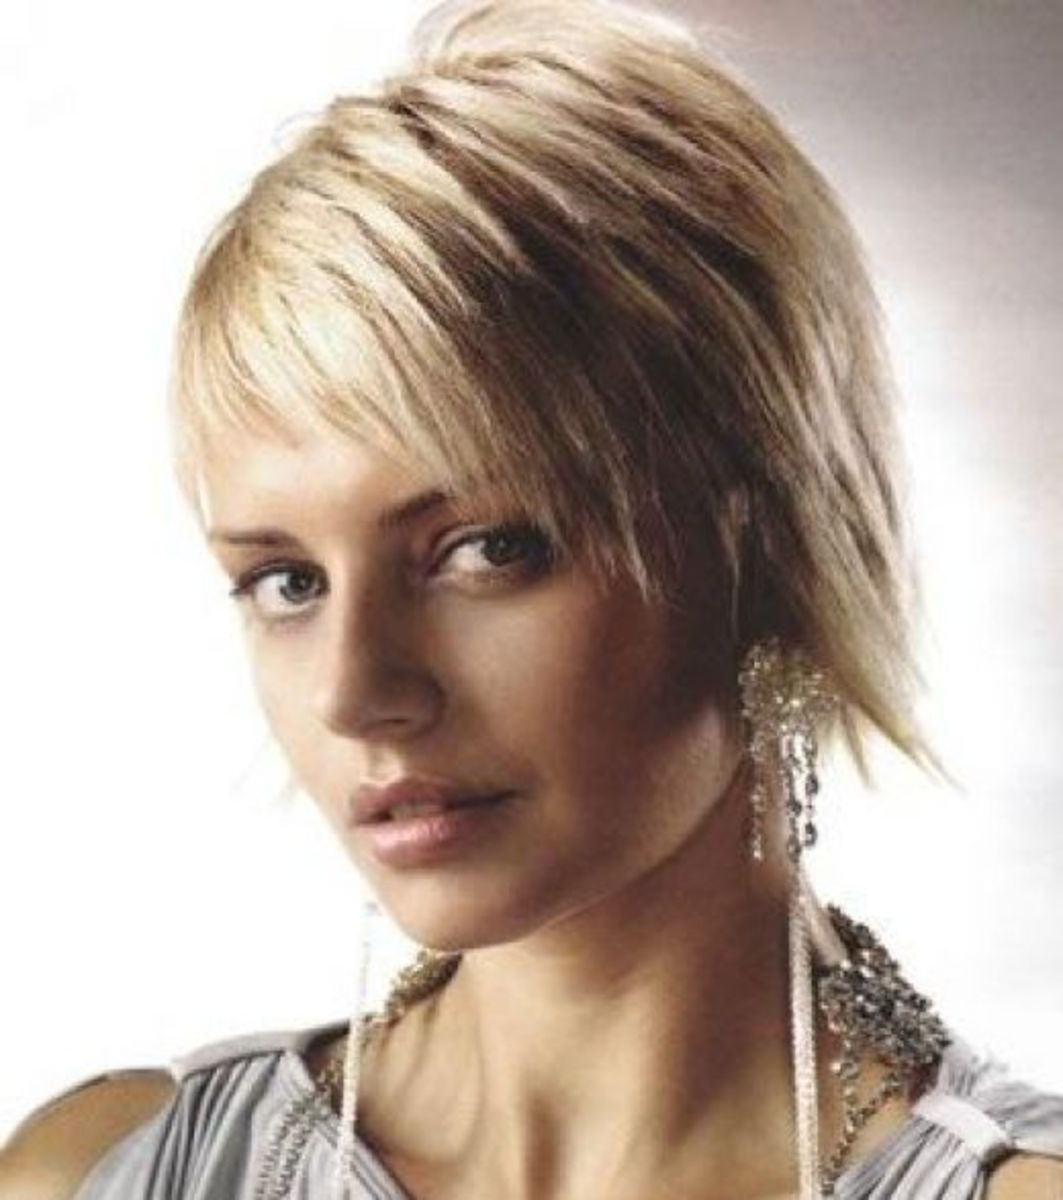 2009 Fringe Hairstyles Fashion For Girls 1